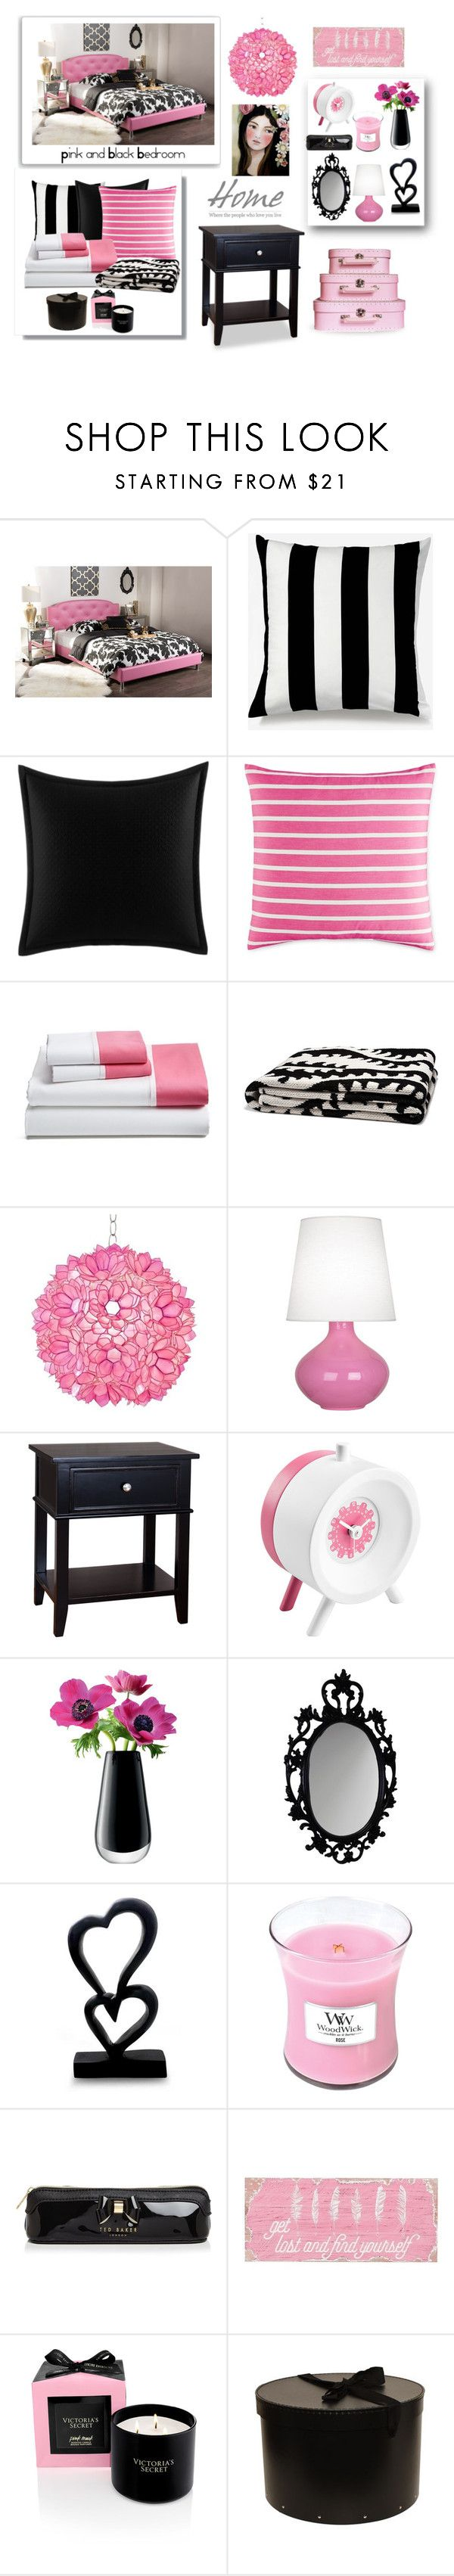 Pink And Black Bedroom By Terry Tlc Liked On Polyvore Featuring Interior